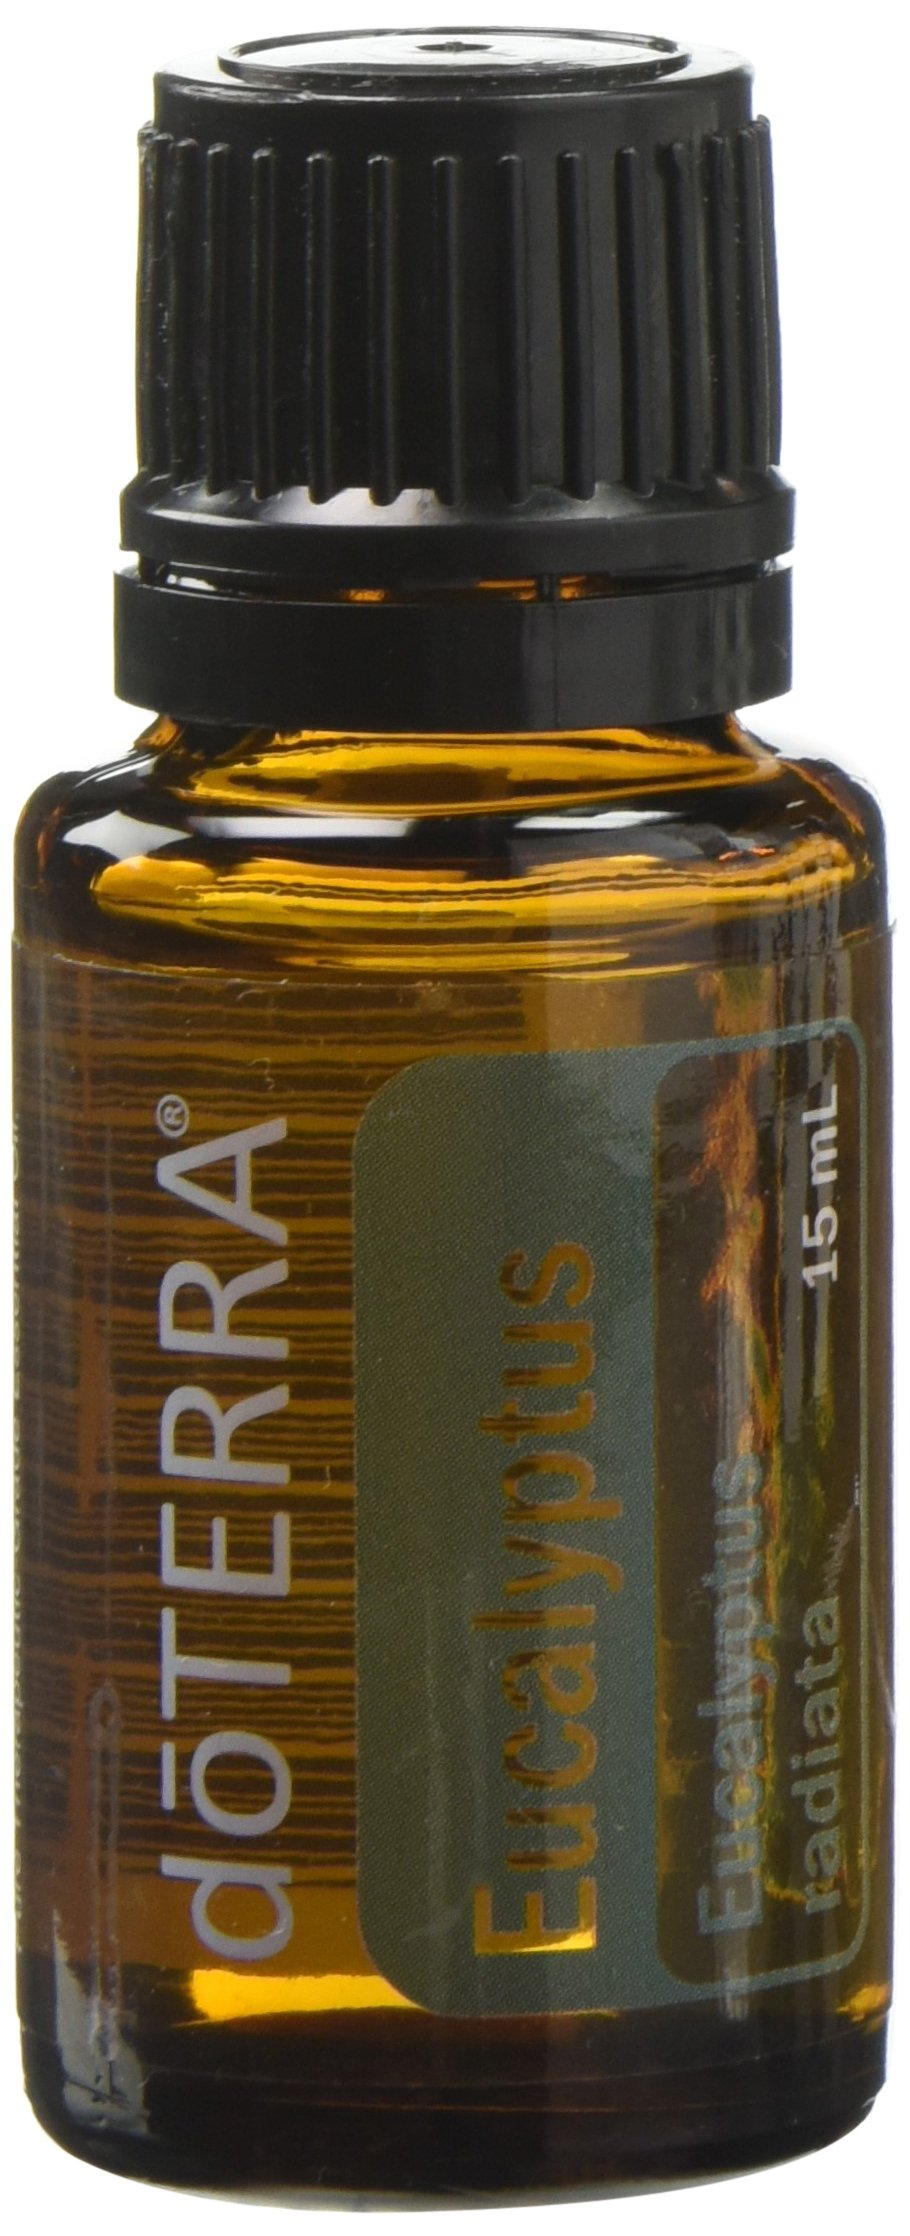 doTERRA - Eucalyptus Radiata Essential Oil - 15 ml